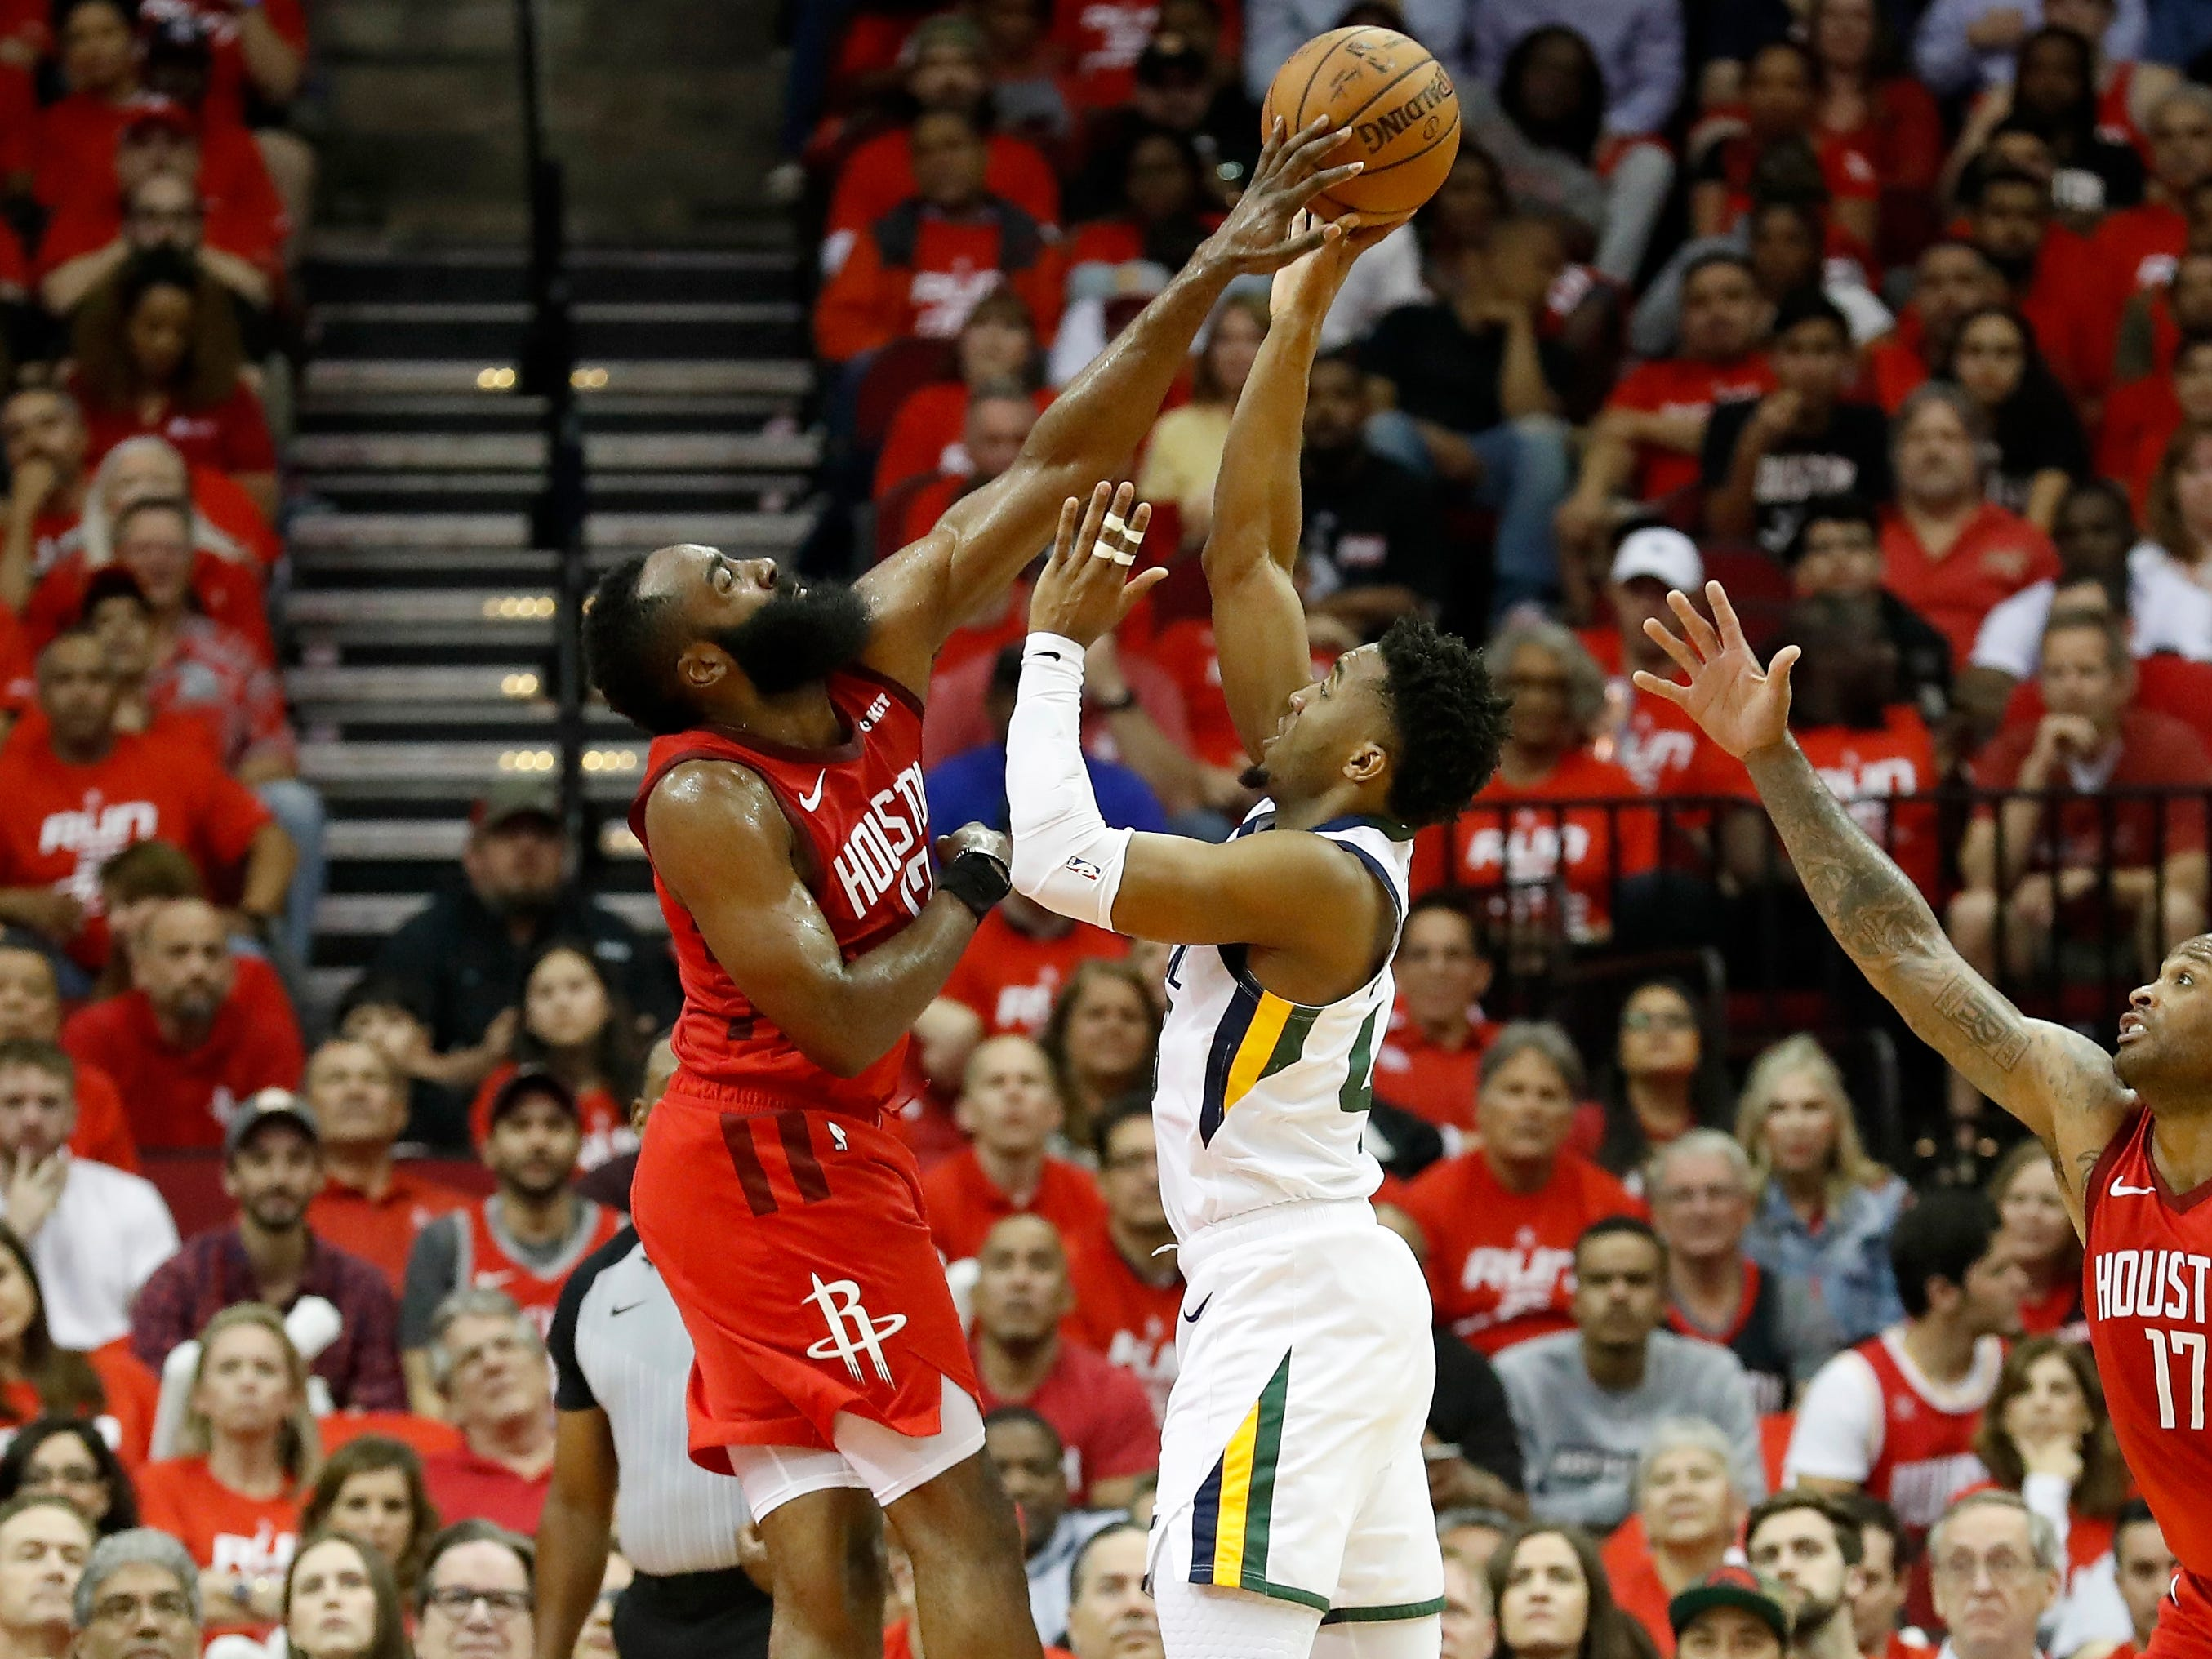 April 24: Rockets defender James Harden (13) blocks a shot attempt by Jazz guard Donovan Mitchell (45) during Game 5.